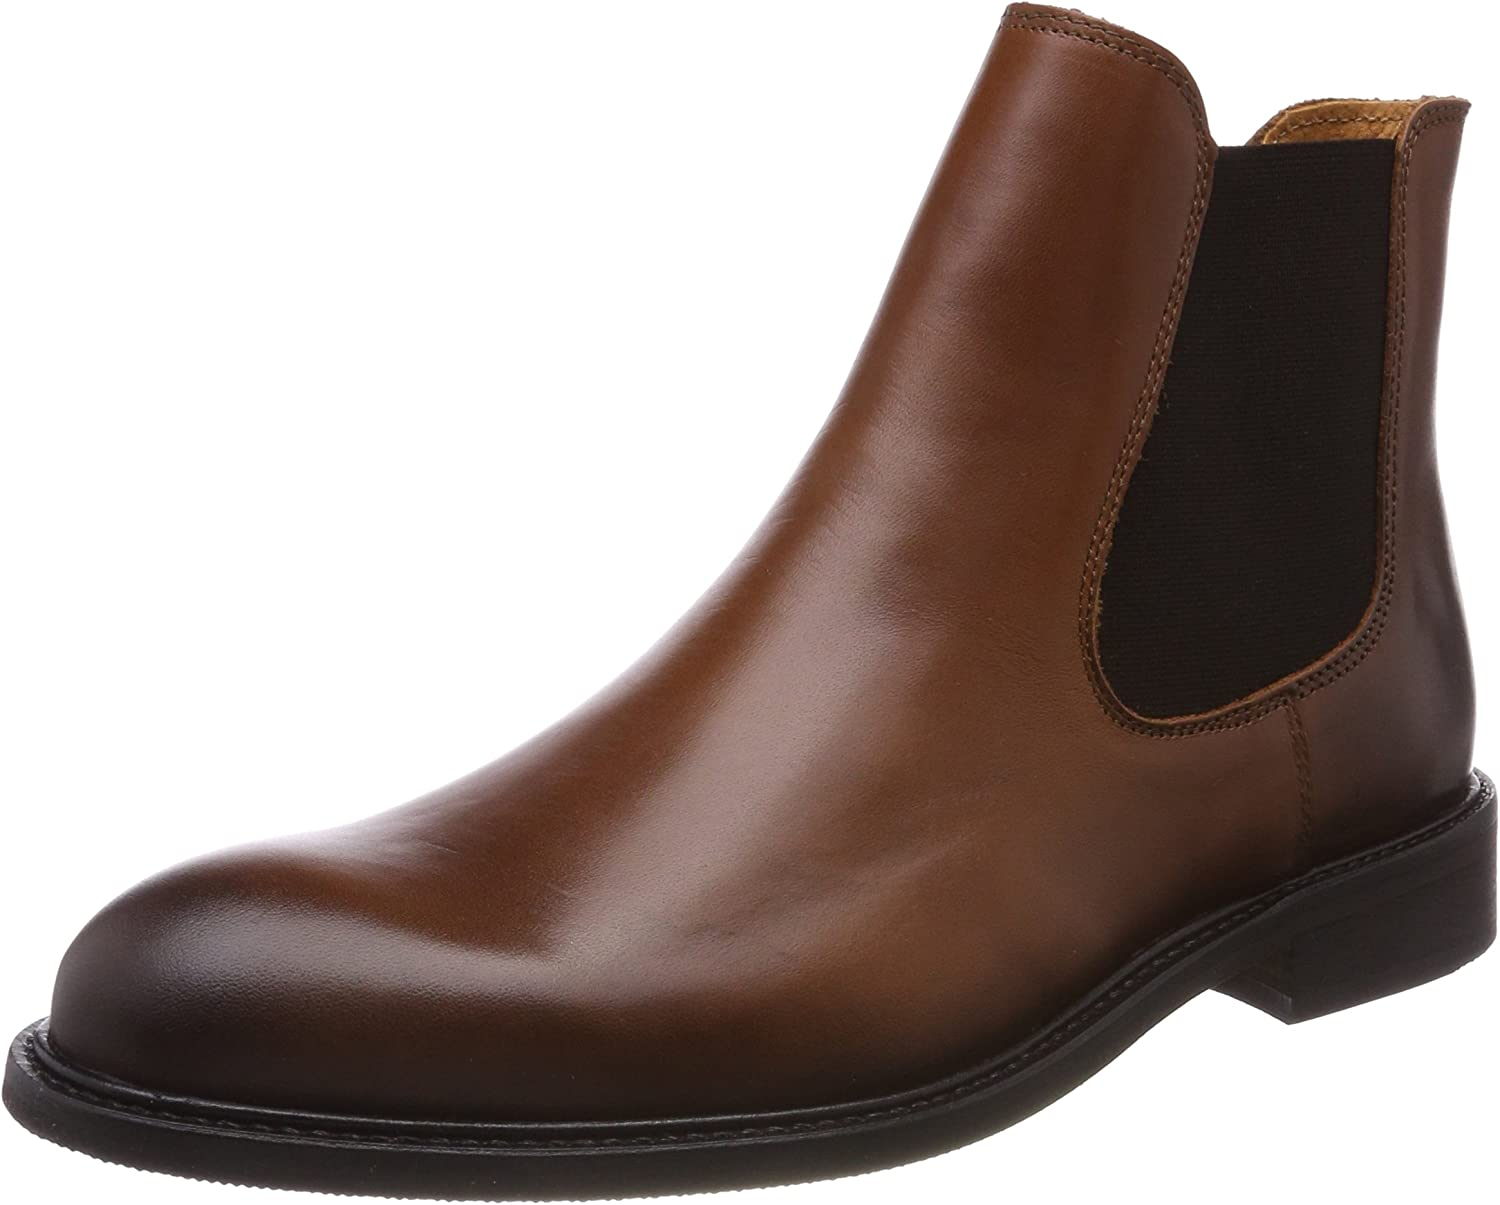 TALLA 46 EU. SELECTED Shdbaxter Chelsea Leather Boot Noos, Botas para Hombre